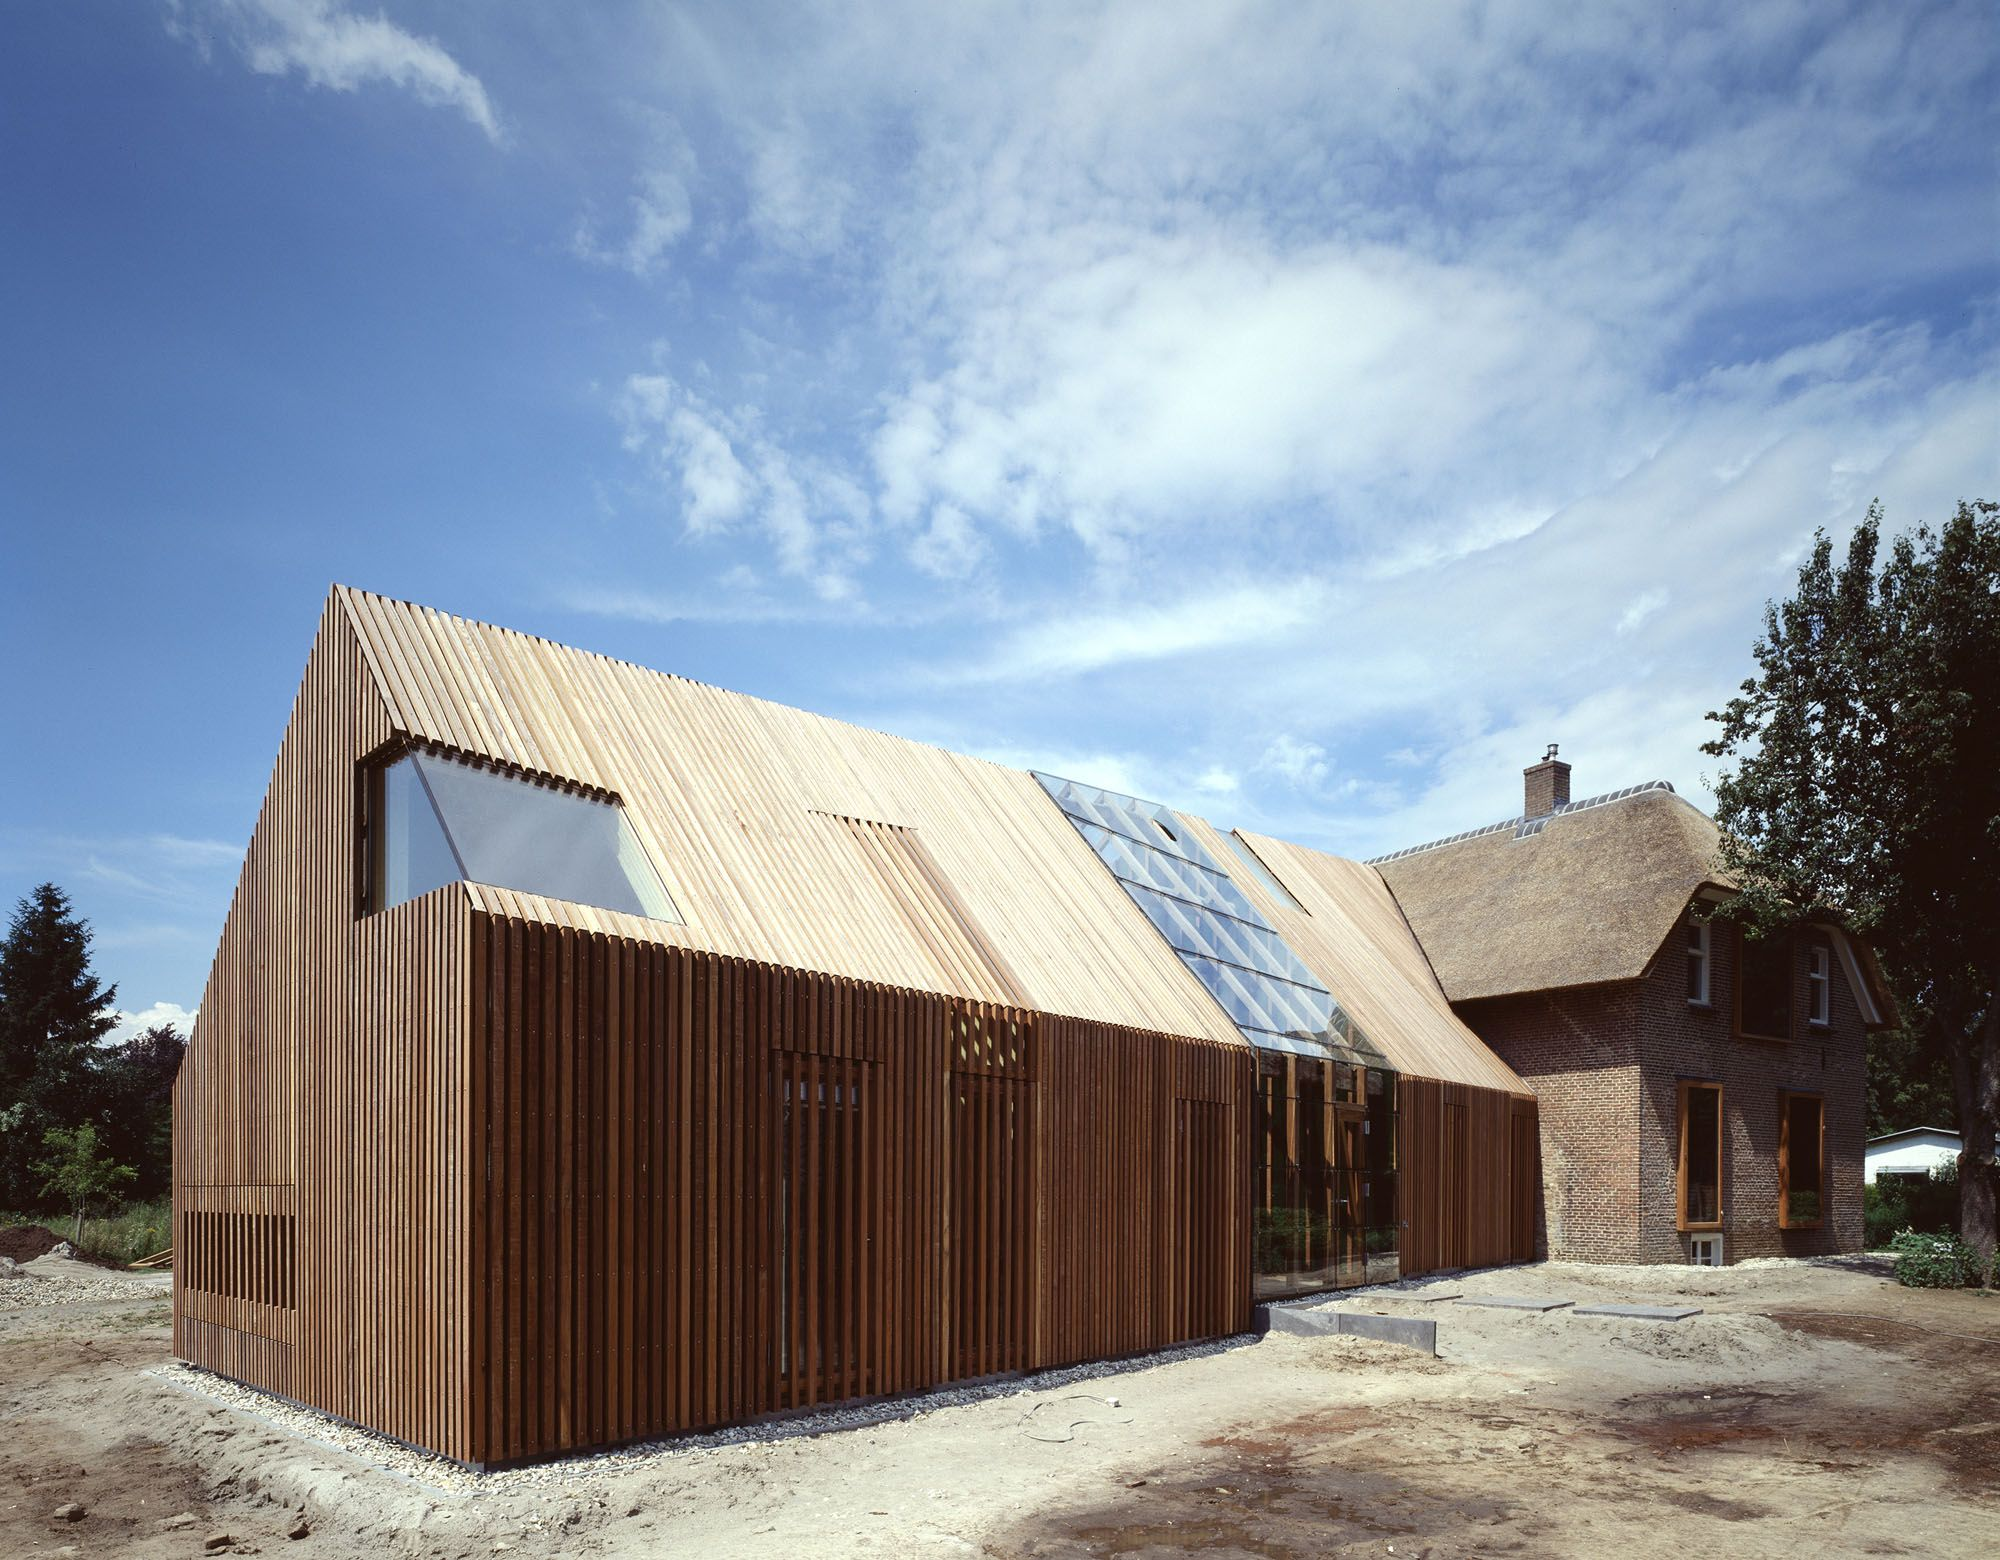 Search Wolzak Farmhouse Renovation And Extension Zutphen Nl Barn House Design Architecture Roof Cladding